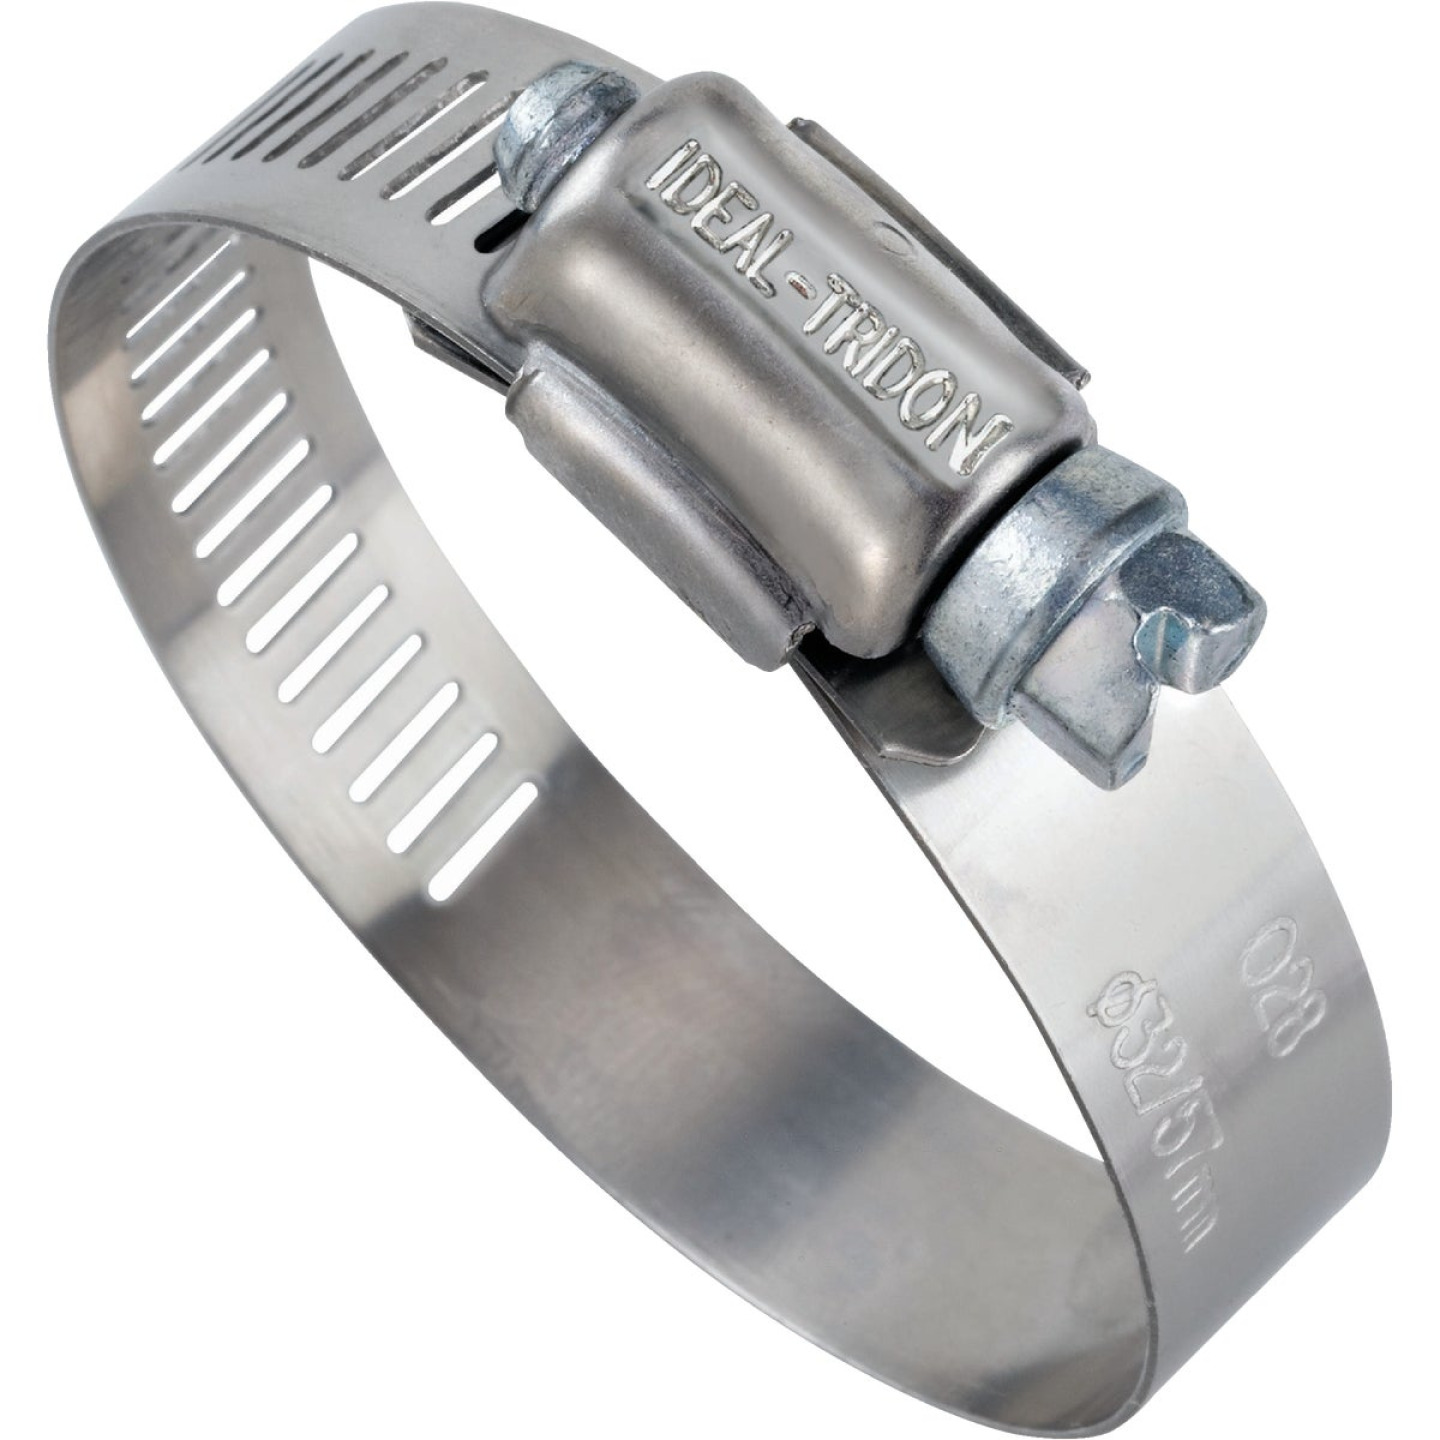 Ideal 1/2 In. - 1-1/4 In. 57 Stainless Steel Hose Clamp with Zinc-Plated Carbon Steel Screw Image 1